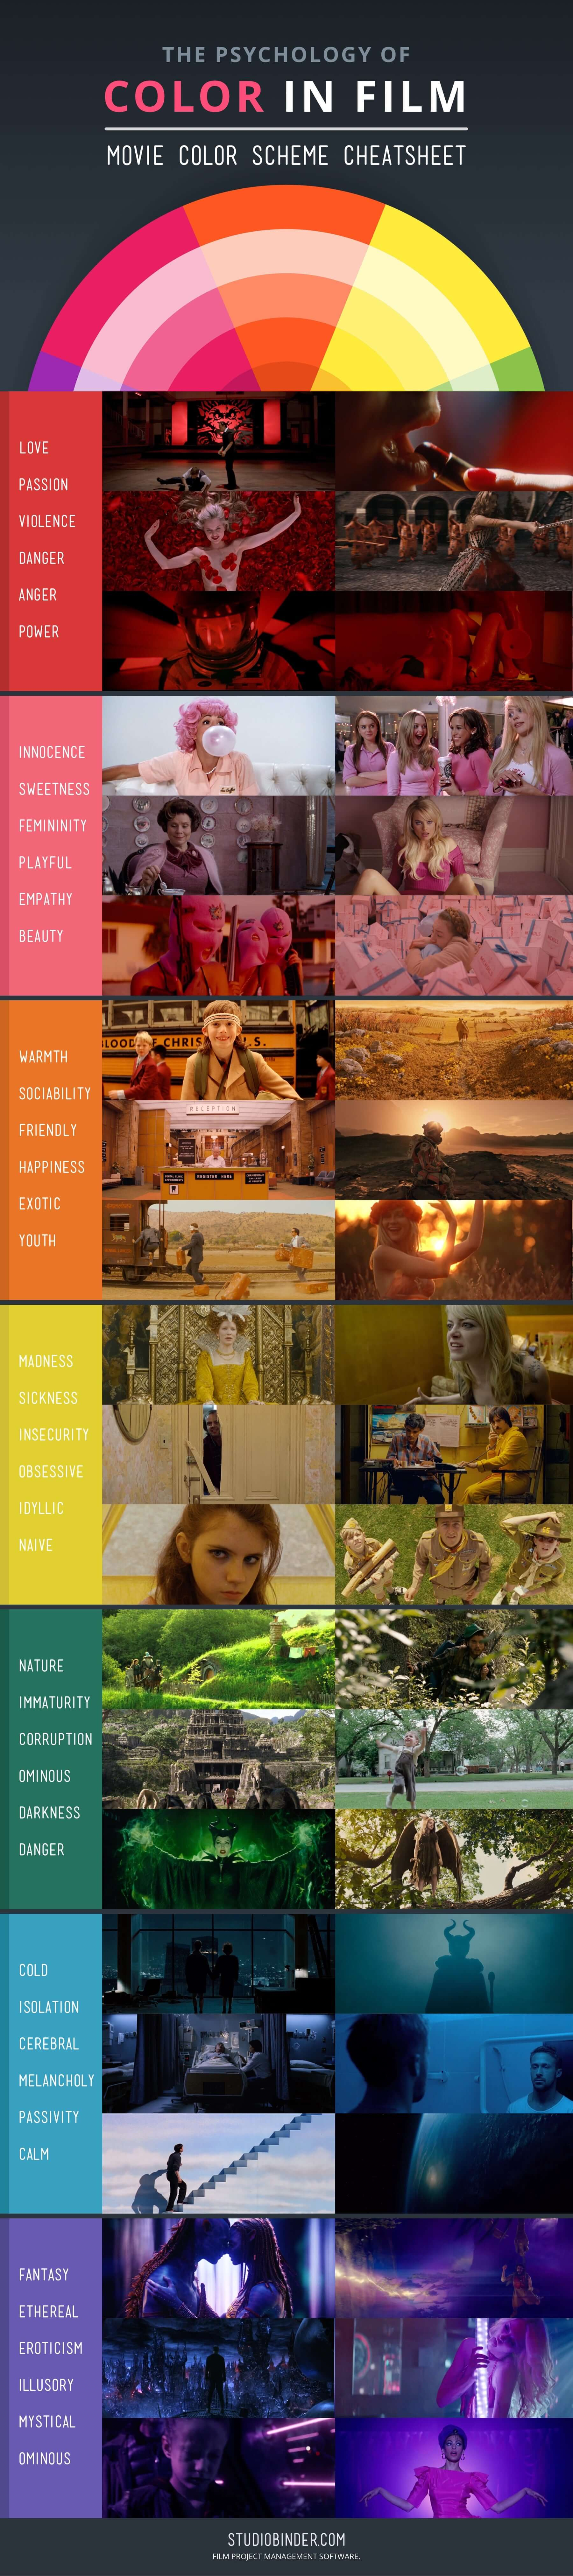 How to Use Color in Film: 50+ Examples of Movie Color Palettes